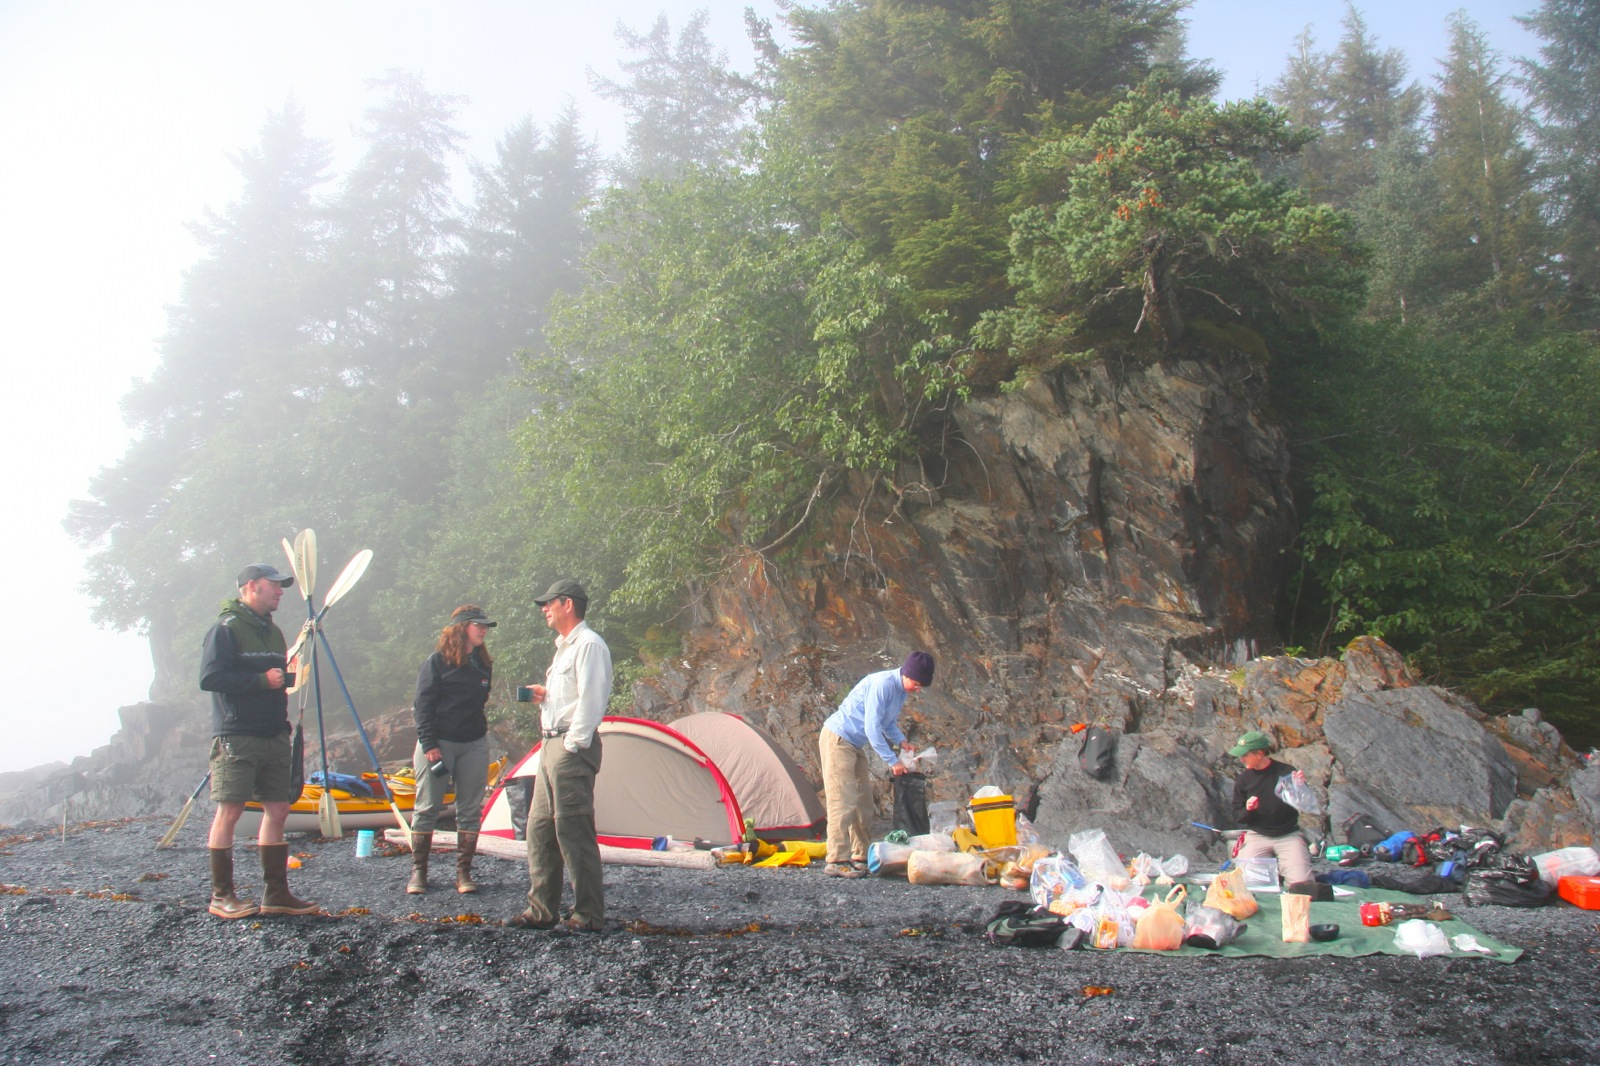 Morning fog rolls through a campsite in Prince William Sound while participants eat breakfast and pack up gear.